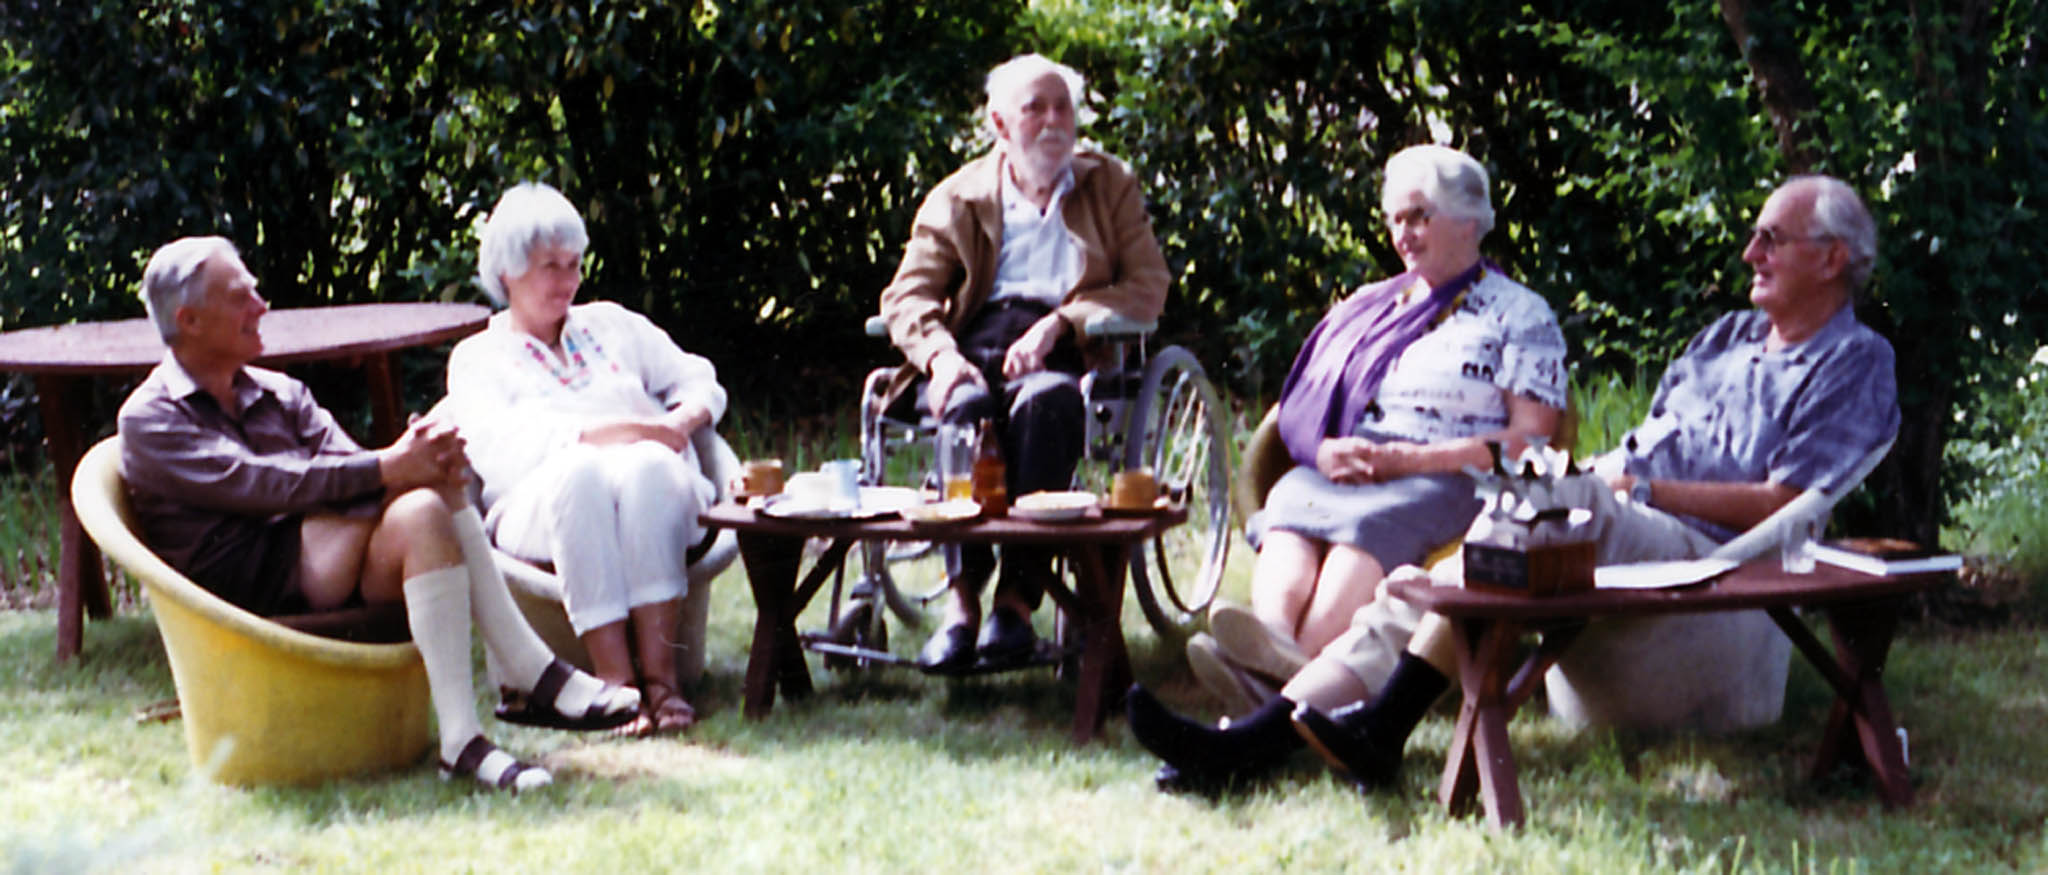 Derek, Maxine, Fred, Phyllis and Ross Hohnen in the garden of their home at 71 Empire Cct. Forrest around 1990. (Puss, Fred's wife, died in 1989 and Fred died in 1990 so this photo was quite timely. Ross died in 2003. The sculpture on the table near Ross was designed by me and presented to him by Dr H.C. Coombs in 1975 when Ross retired from ANU. It was typical of Ross's thoughtfulness to bring the presentation sculpture out for this informal occasion. I'm glad we took that photograph – it was a unique and momentous meeting.